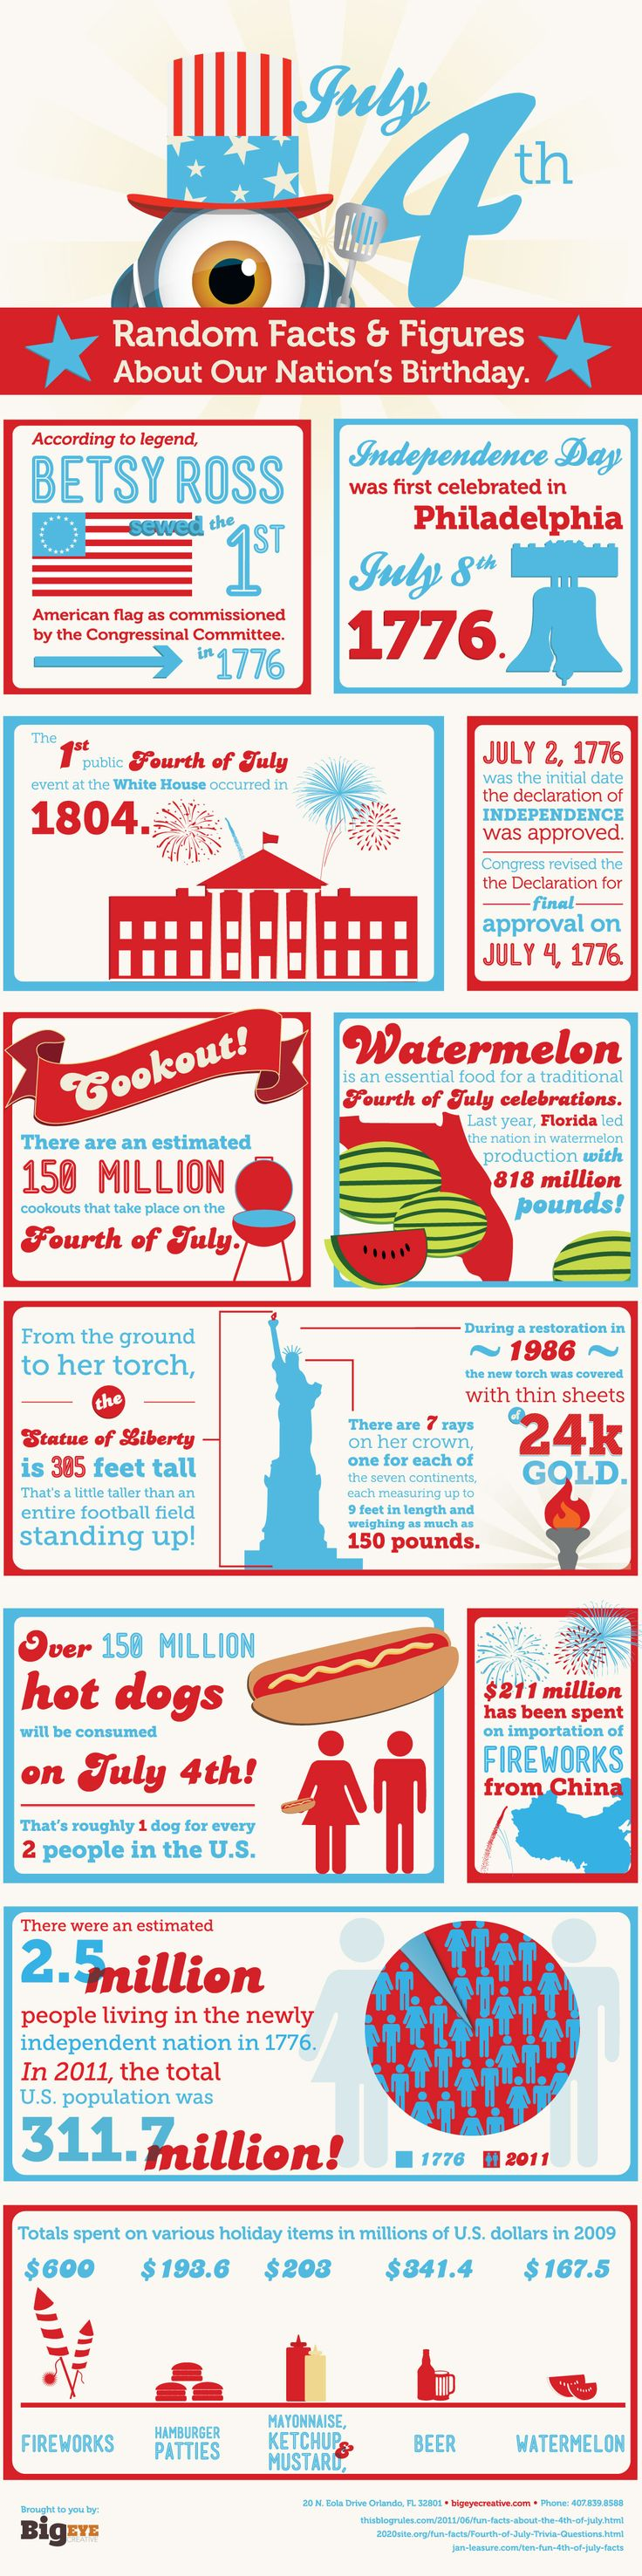 BIGEYE's 4th of July Infographic is full of fun Independence Day trivia!